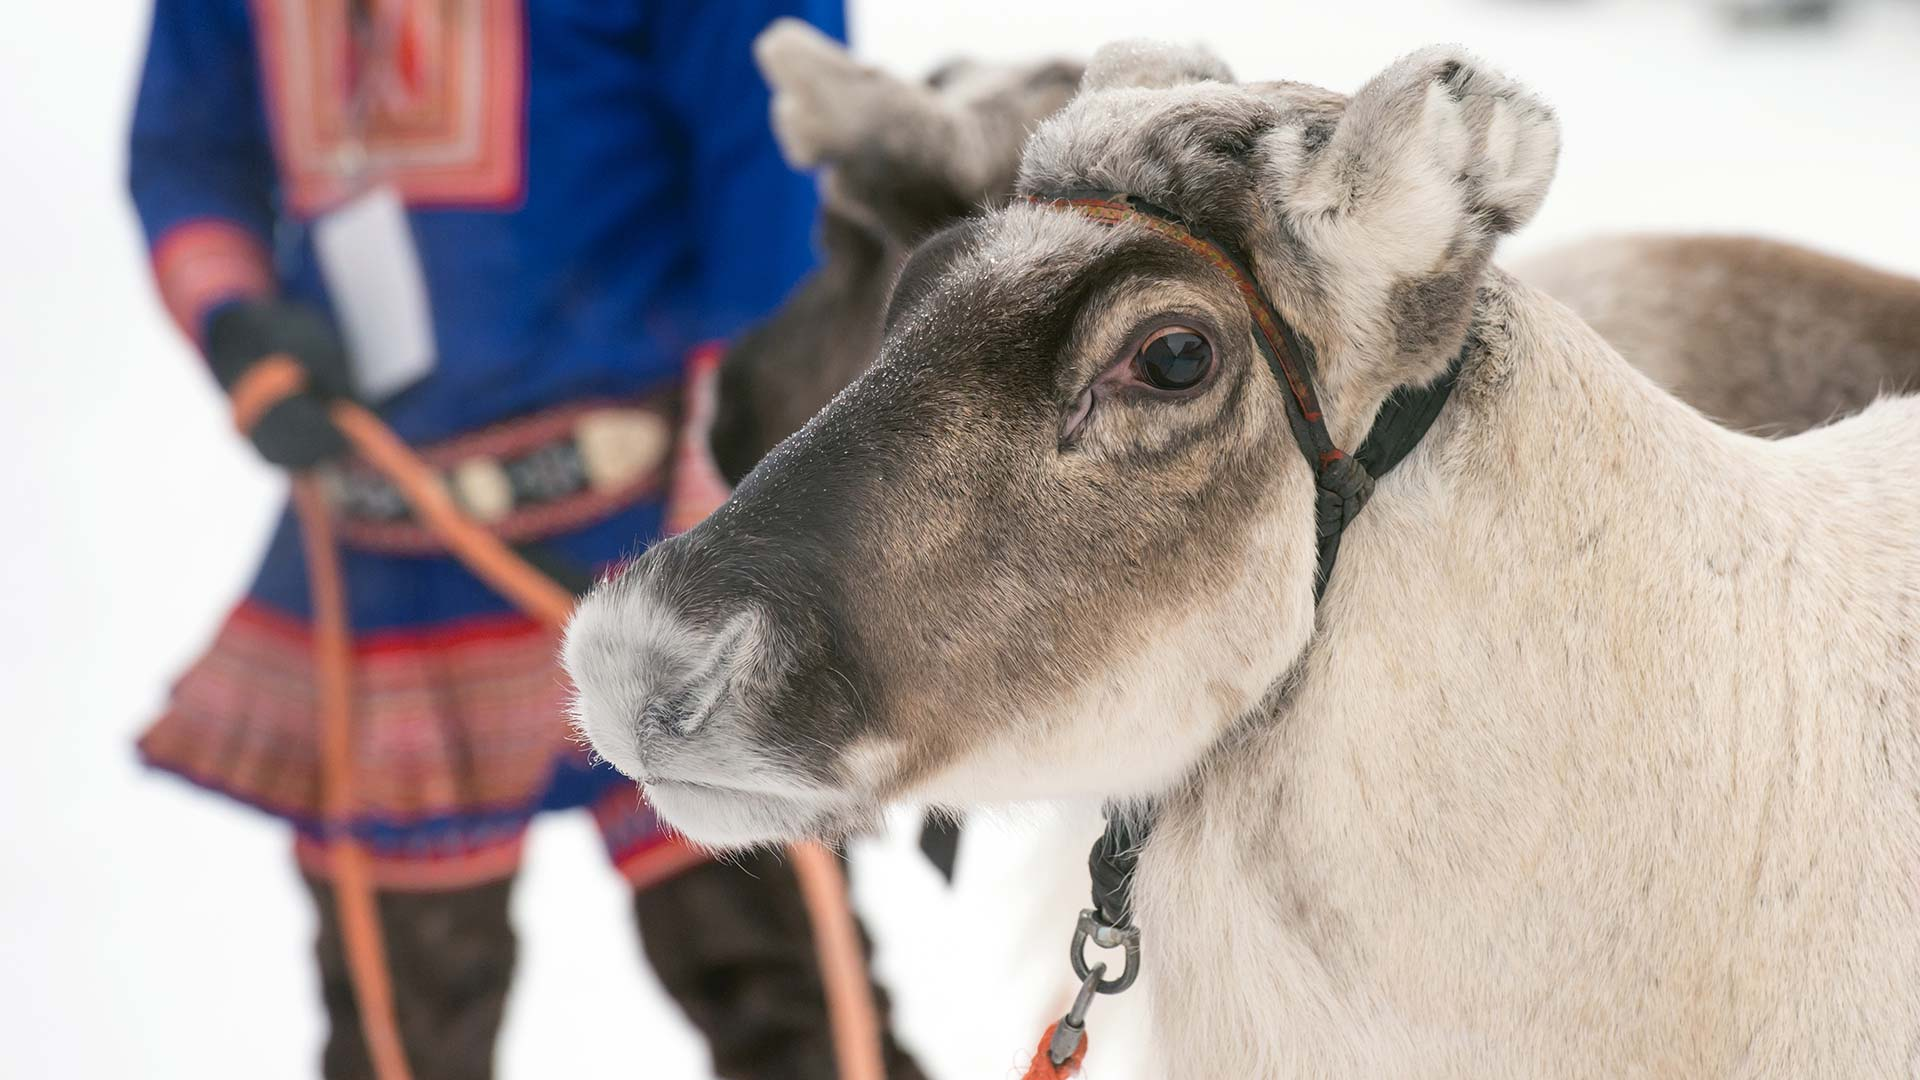 Sami reindeer in Norway